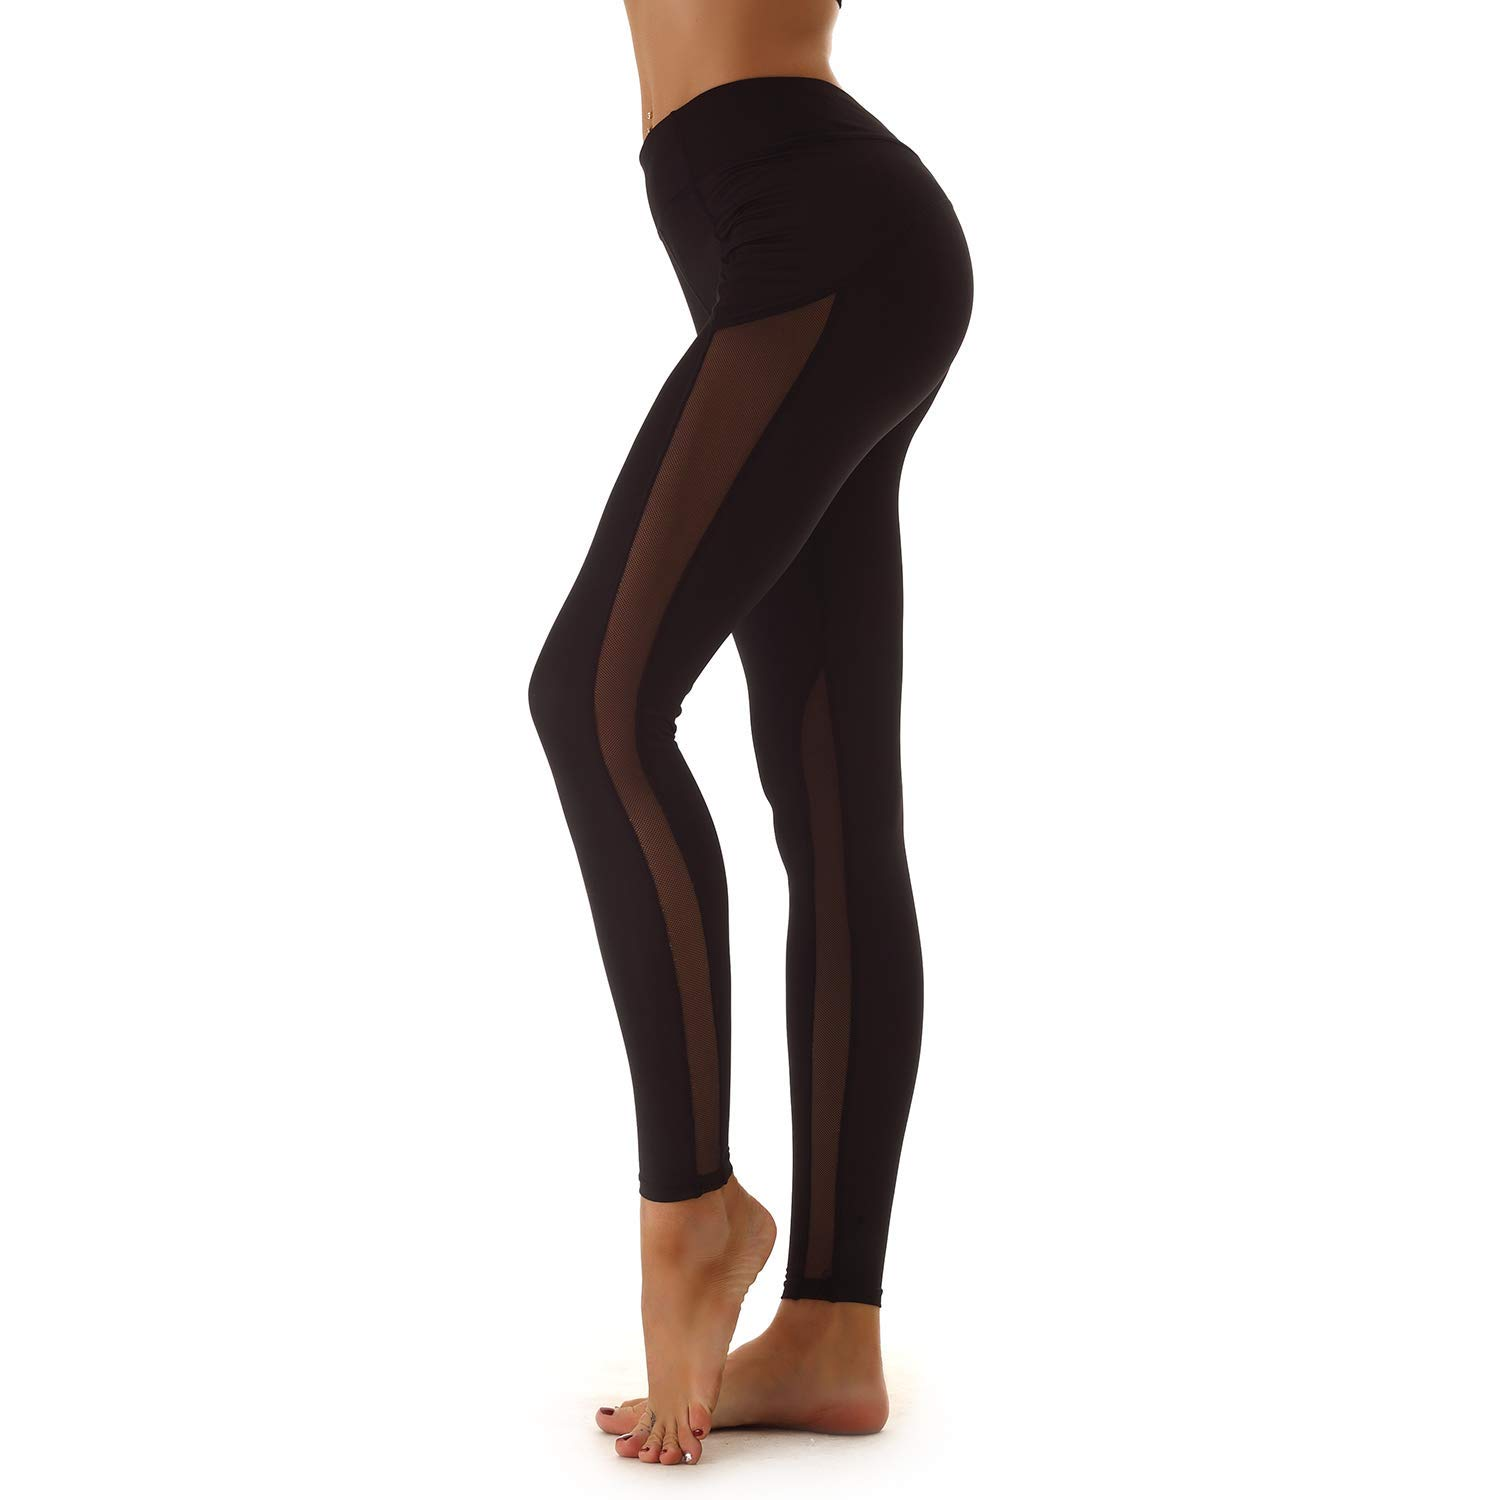 03a753eb2ea94 Get Quotations · NINE BULL Women's Sport Yoga Leggings High Waist Workout  Pants Mesh Tights for Running Jogging Gym